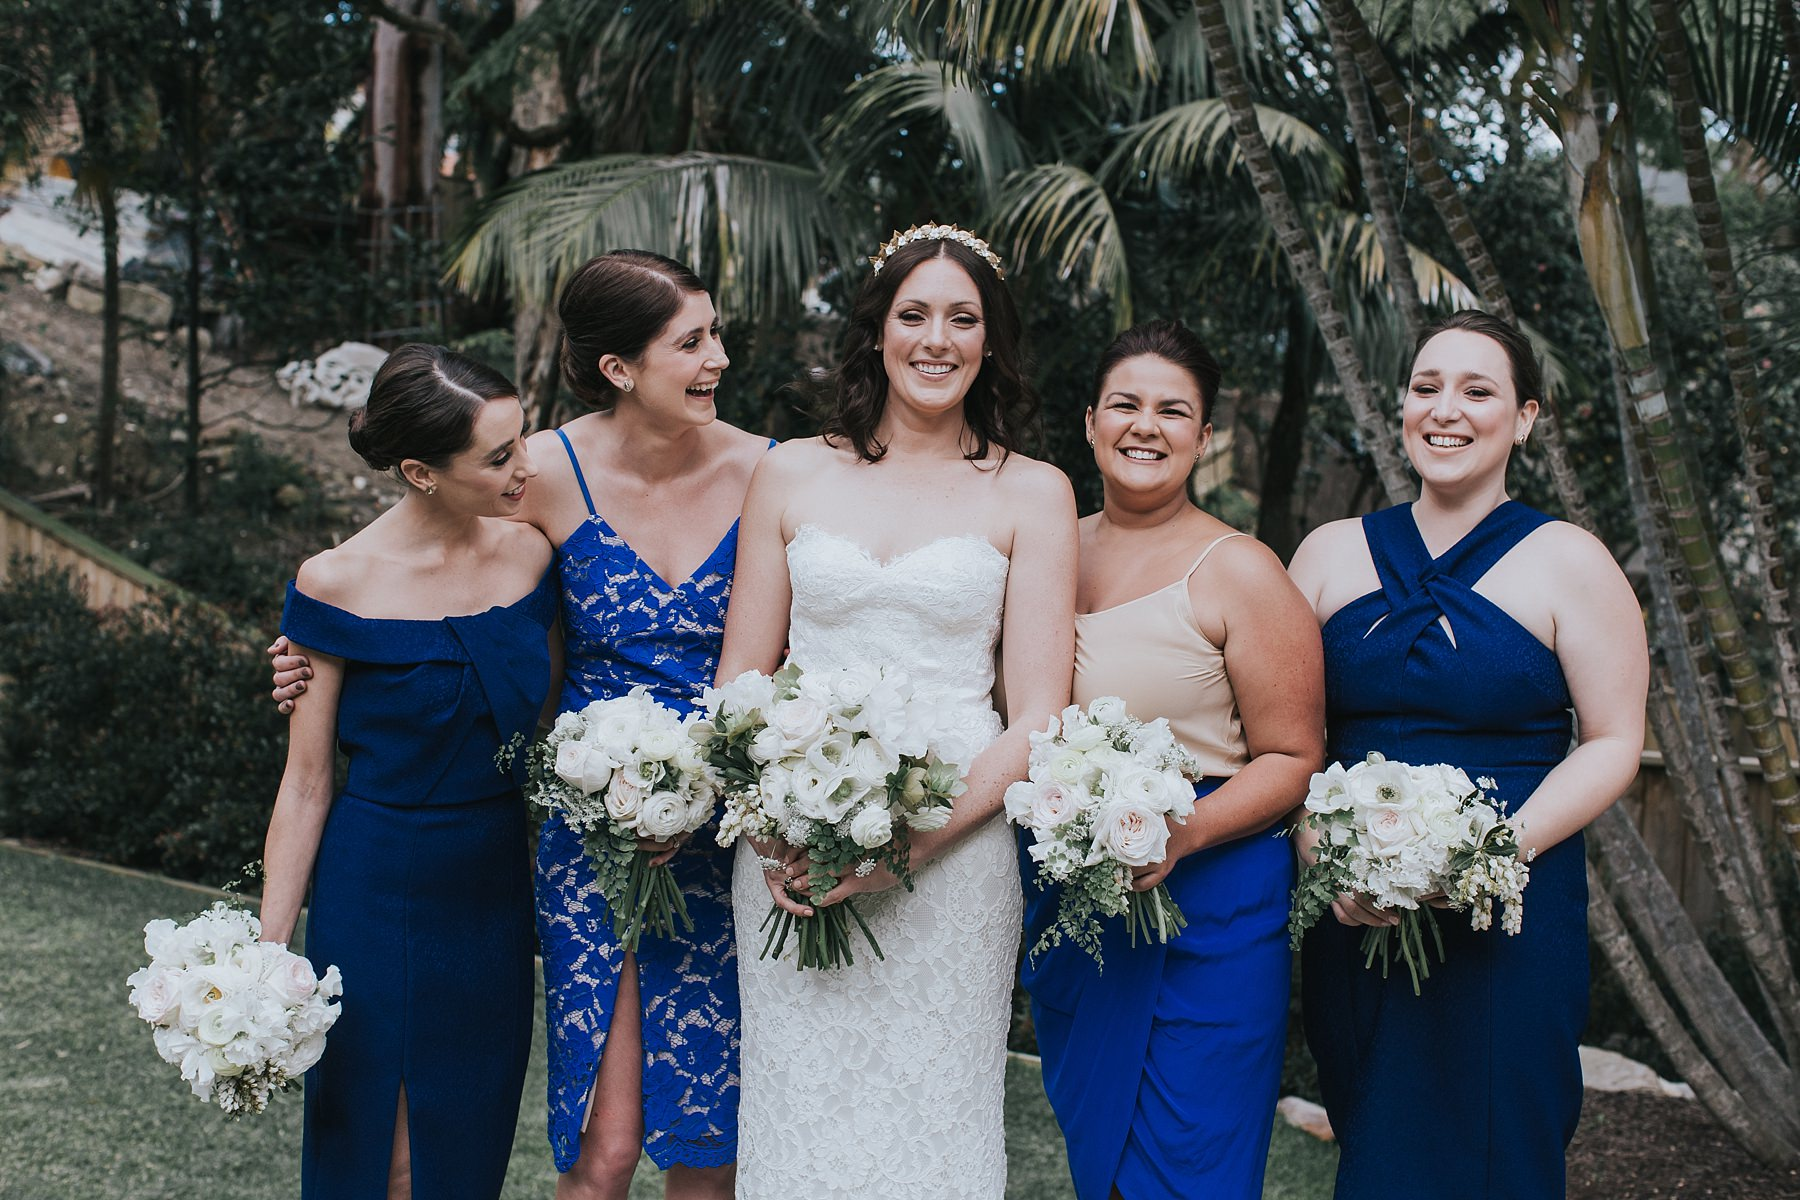 balmoral beach wedding photos by jonathan david